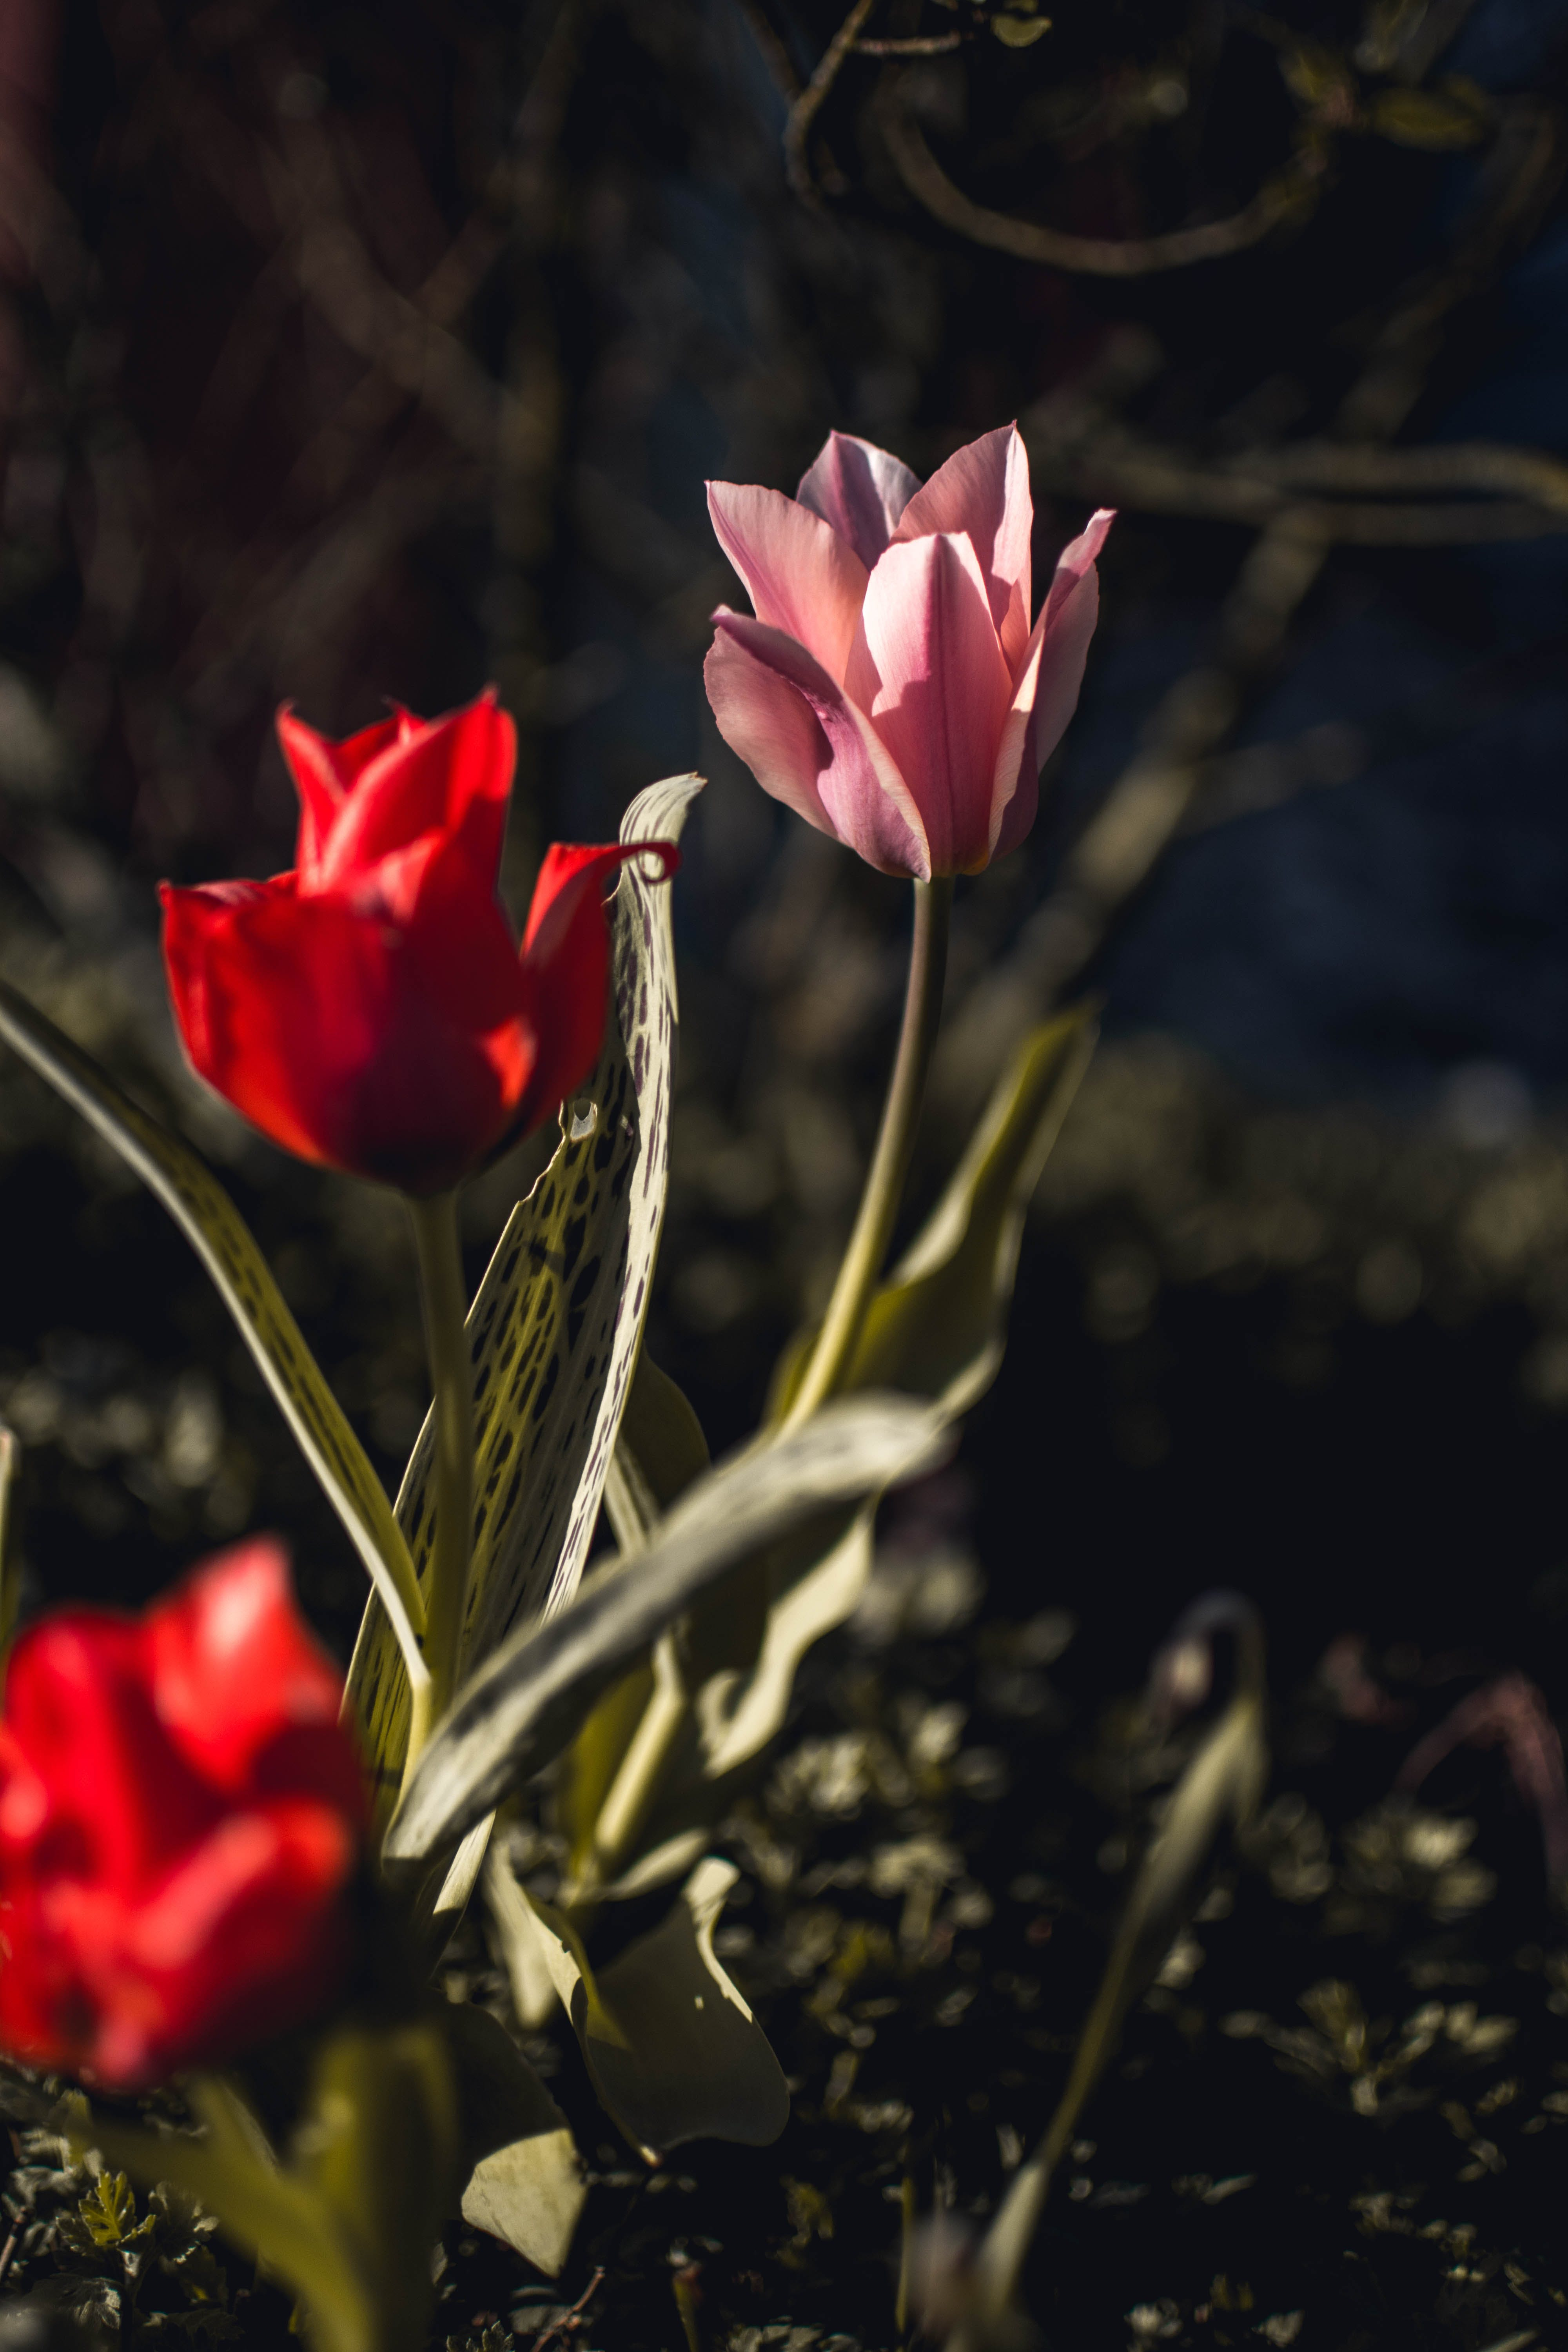 Pink and Red Tulips Closeup Photography